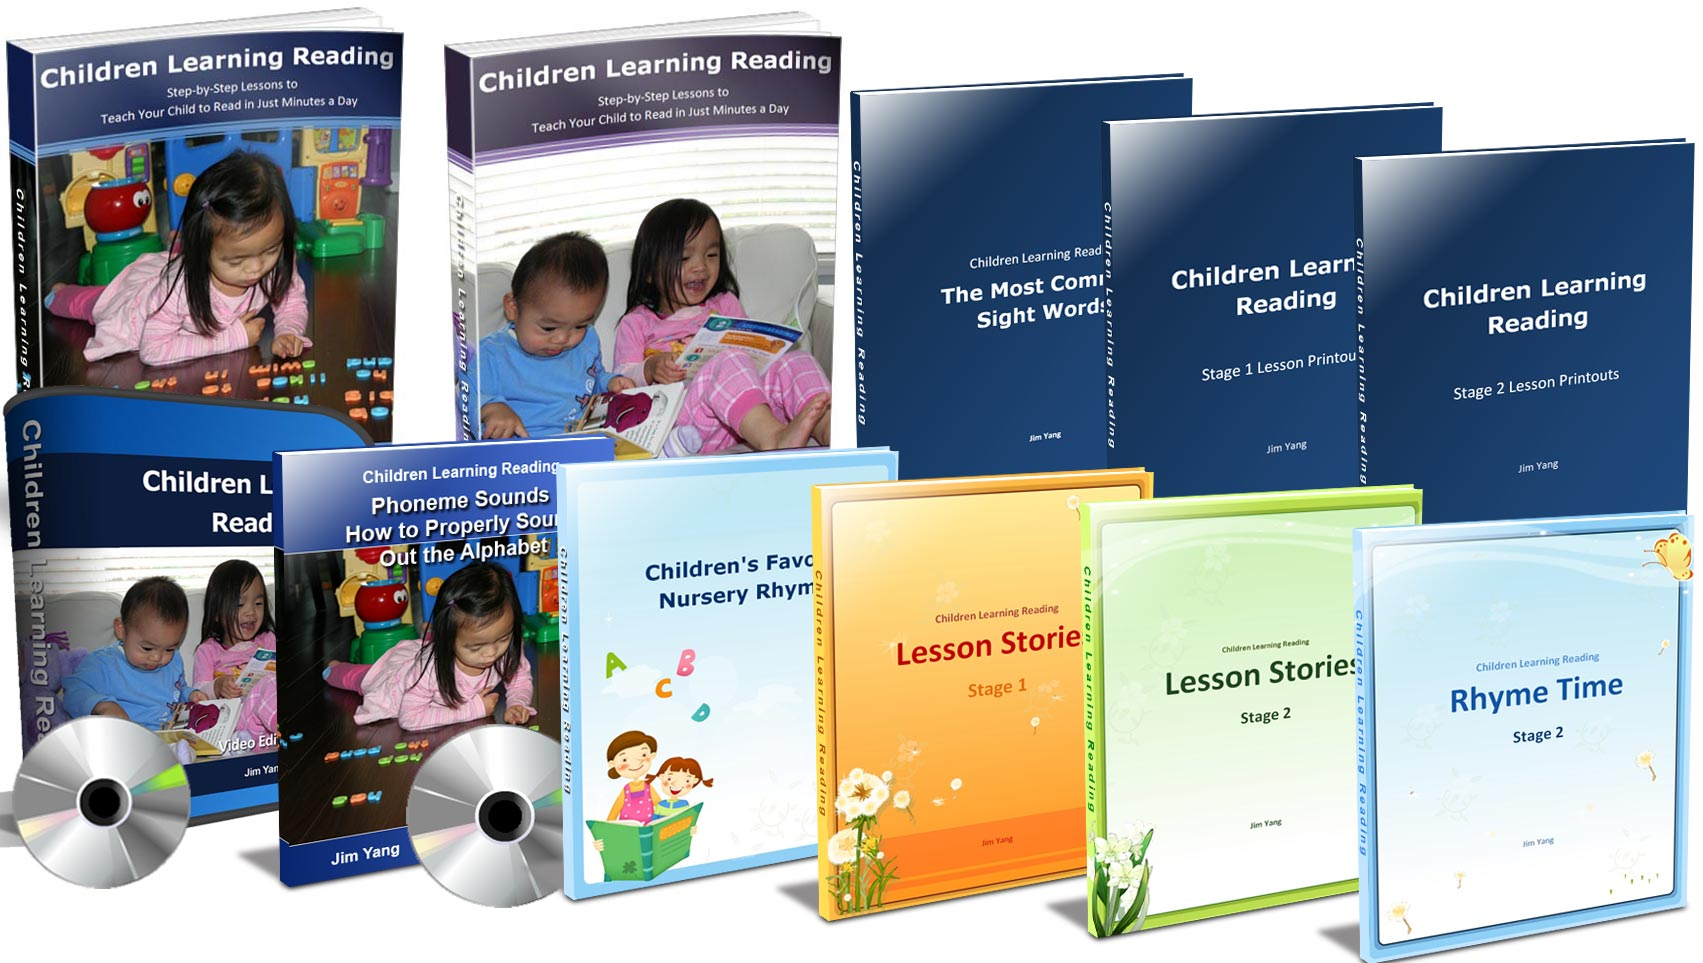 children learning reading review, children-learning-reading-review, Children Learning Reading Program Review, how to teach a child to read, how to teach a kid to read, how to teach a child to read, children learning reading reviews